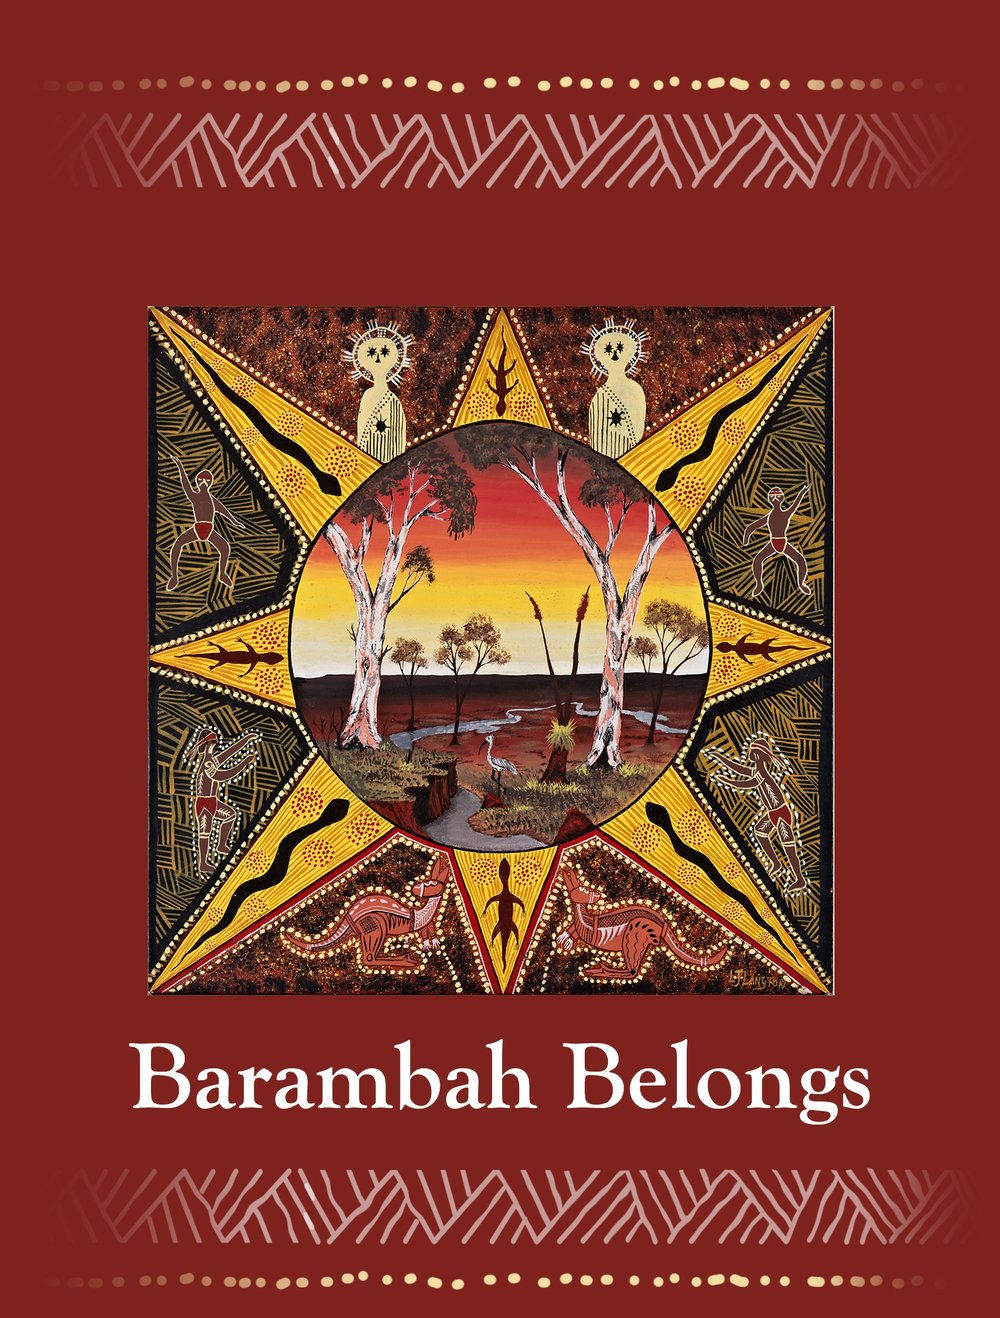 Barambah Belongs